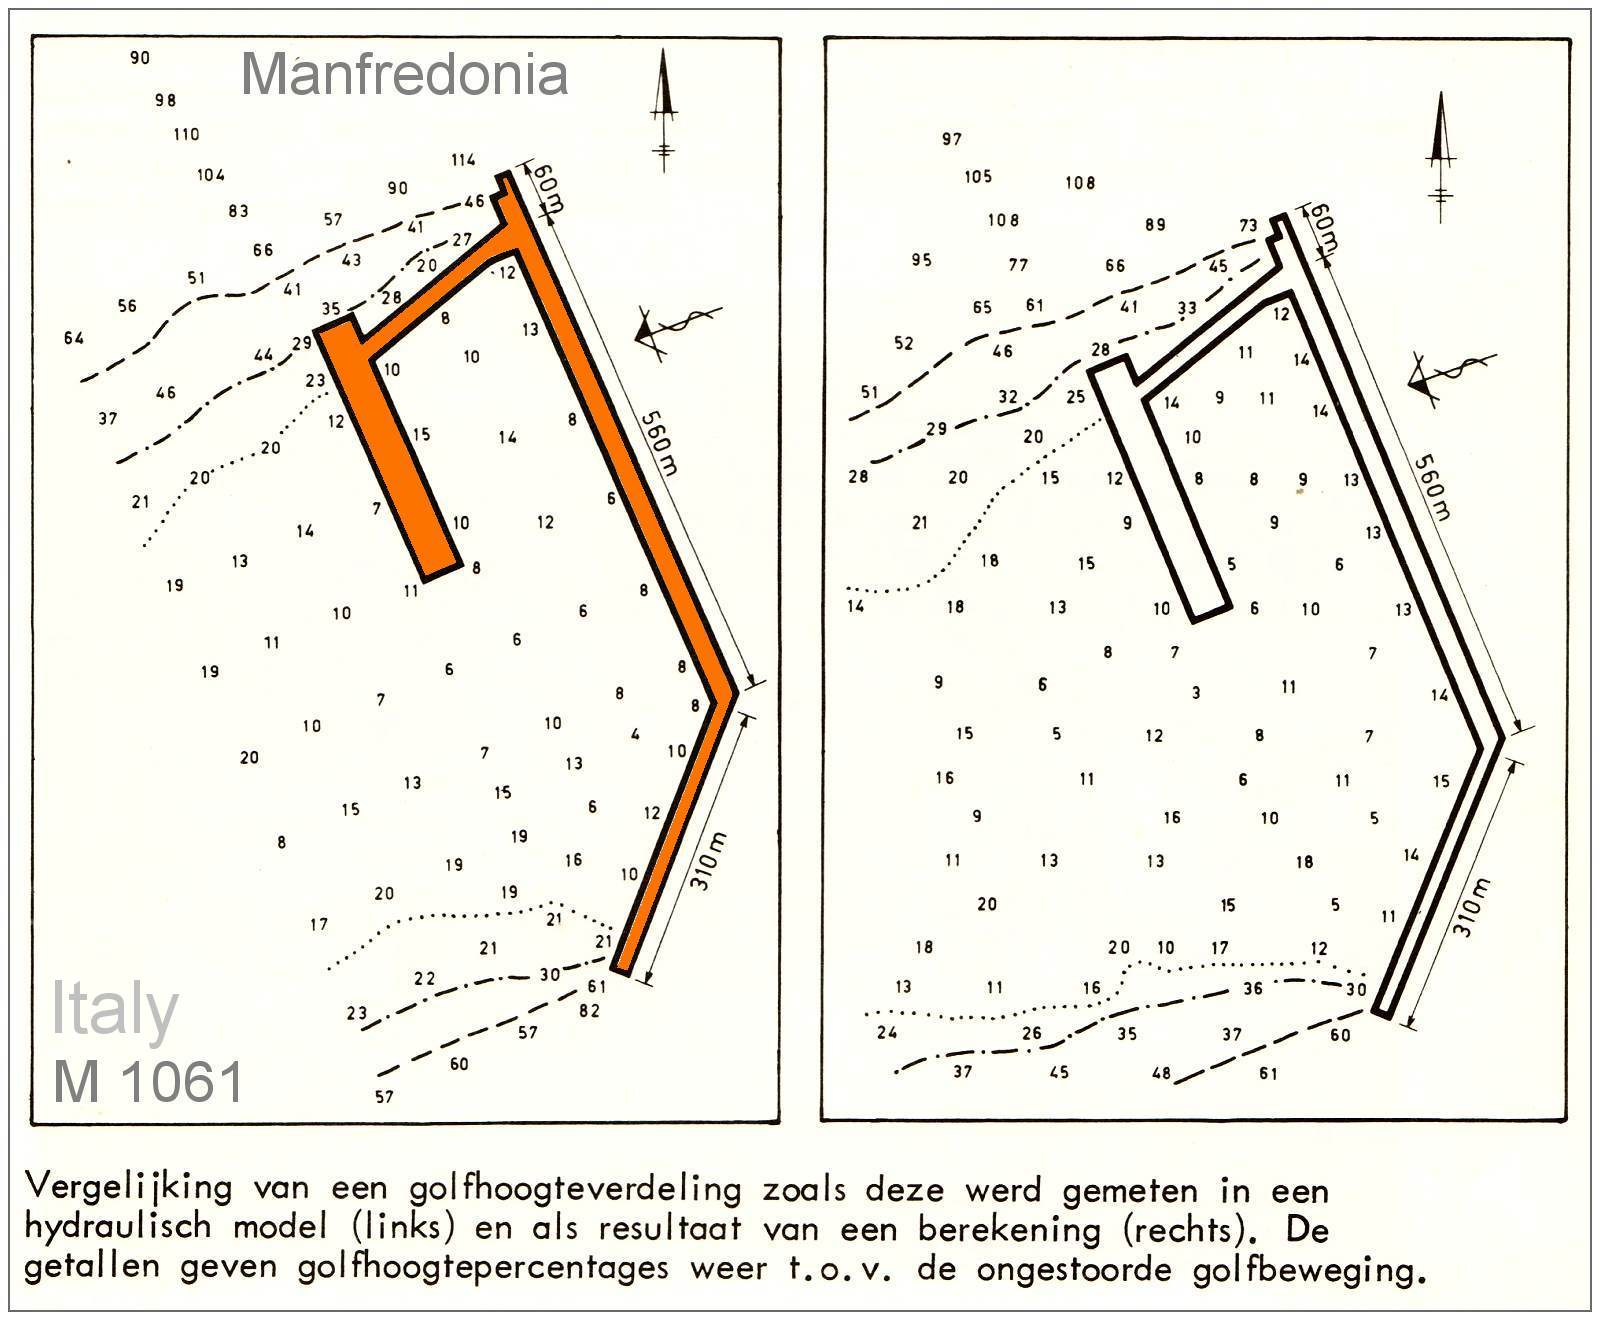 M 1061 - Manfredonia - comparison wave-height (Hydraulic versus Mathematical)